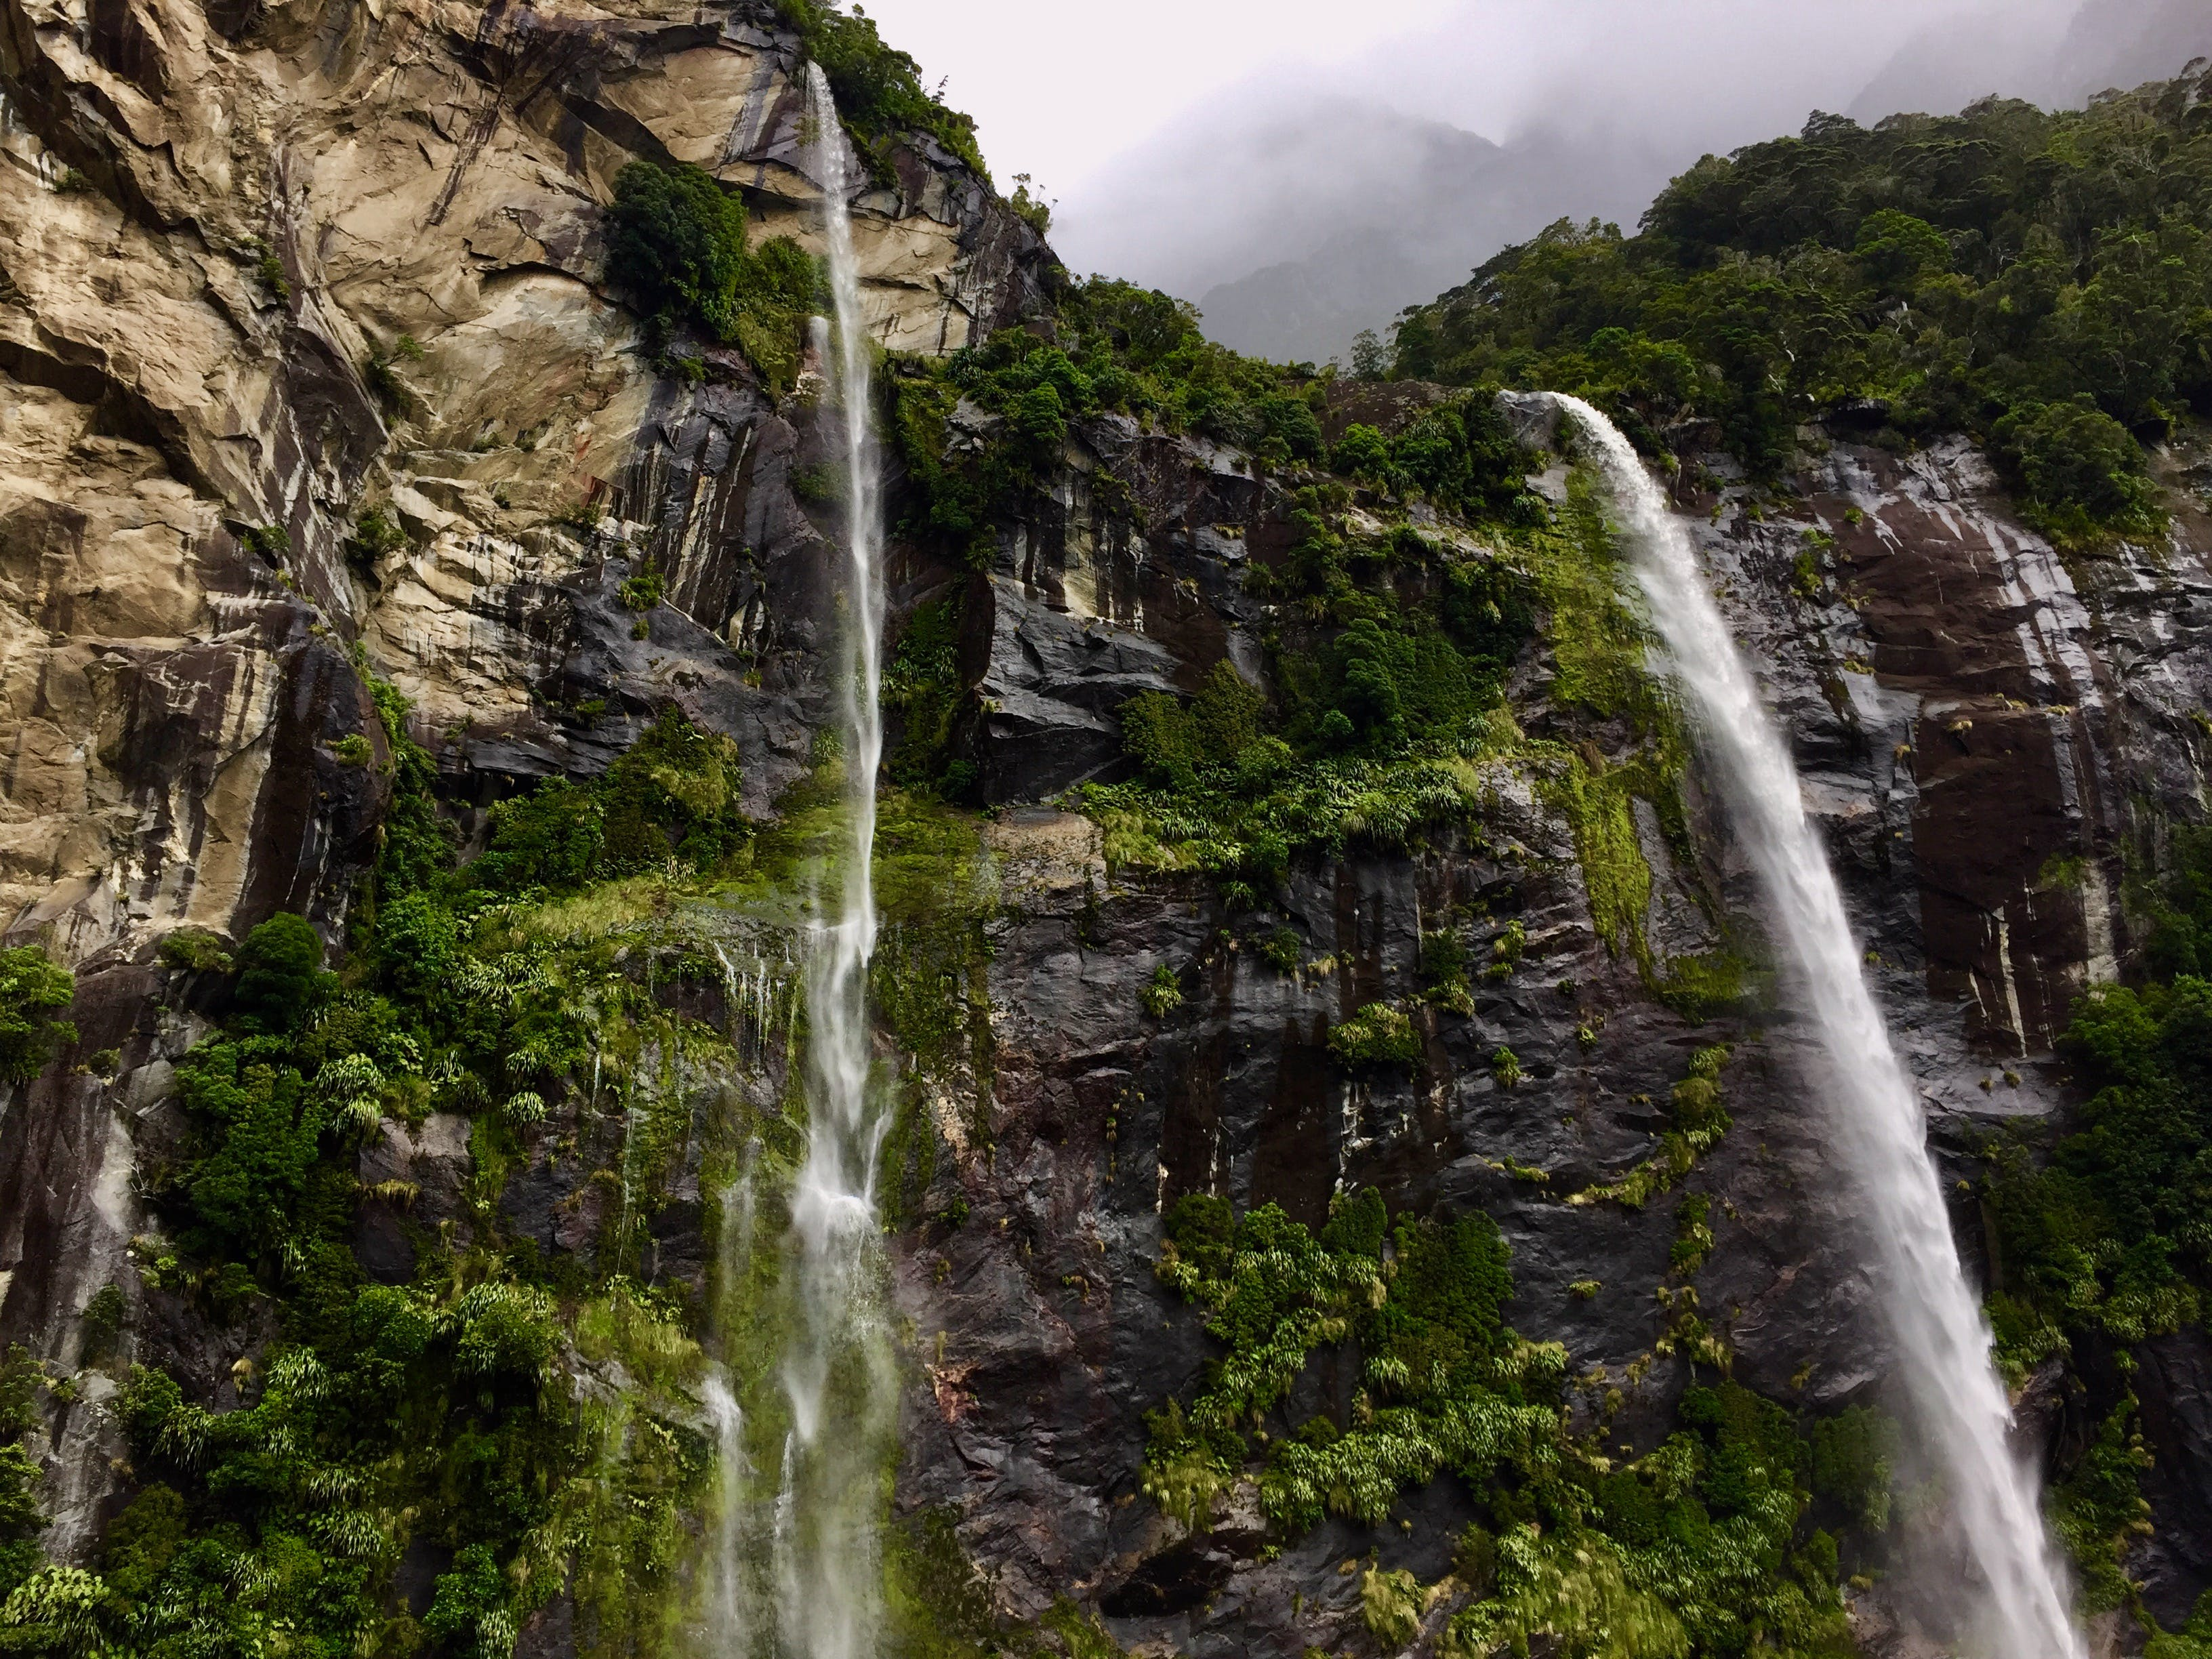 Timelapse Photography of Flowing Waterfalls